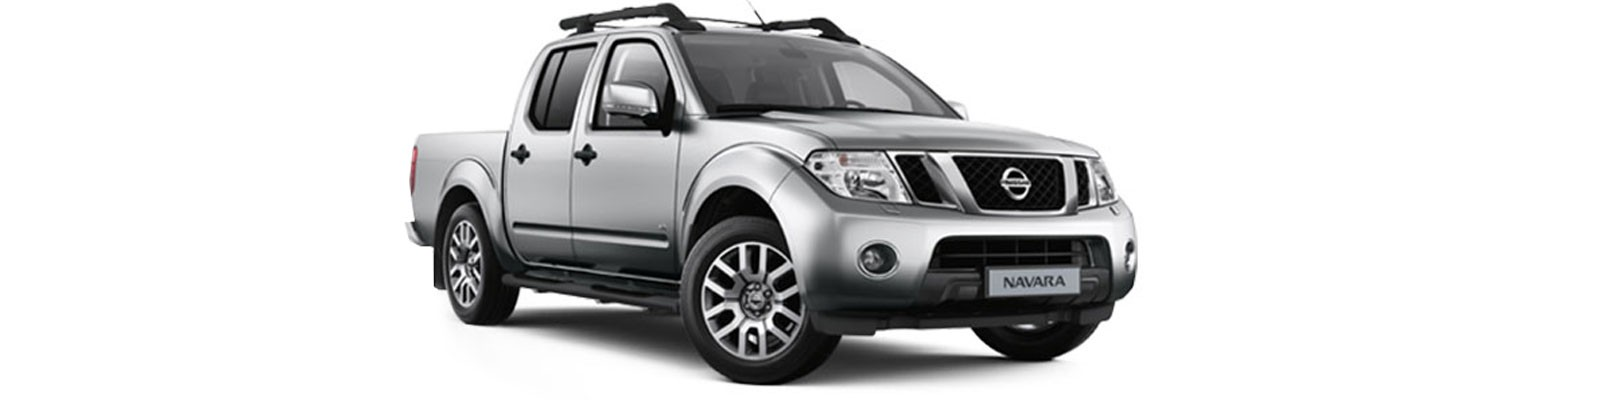 Nissan Navara Styling Parts D40